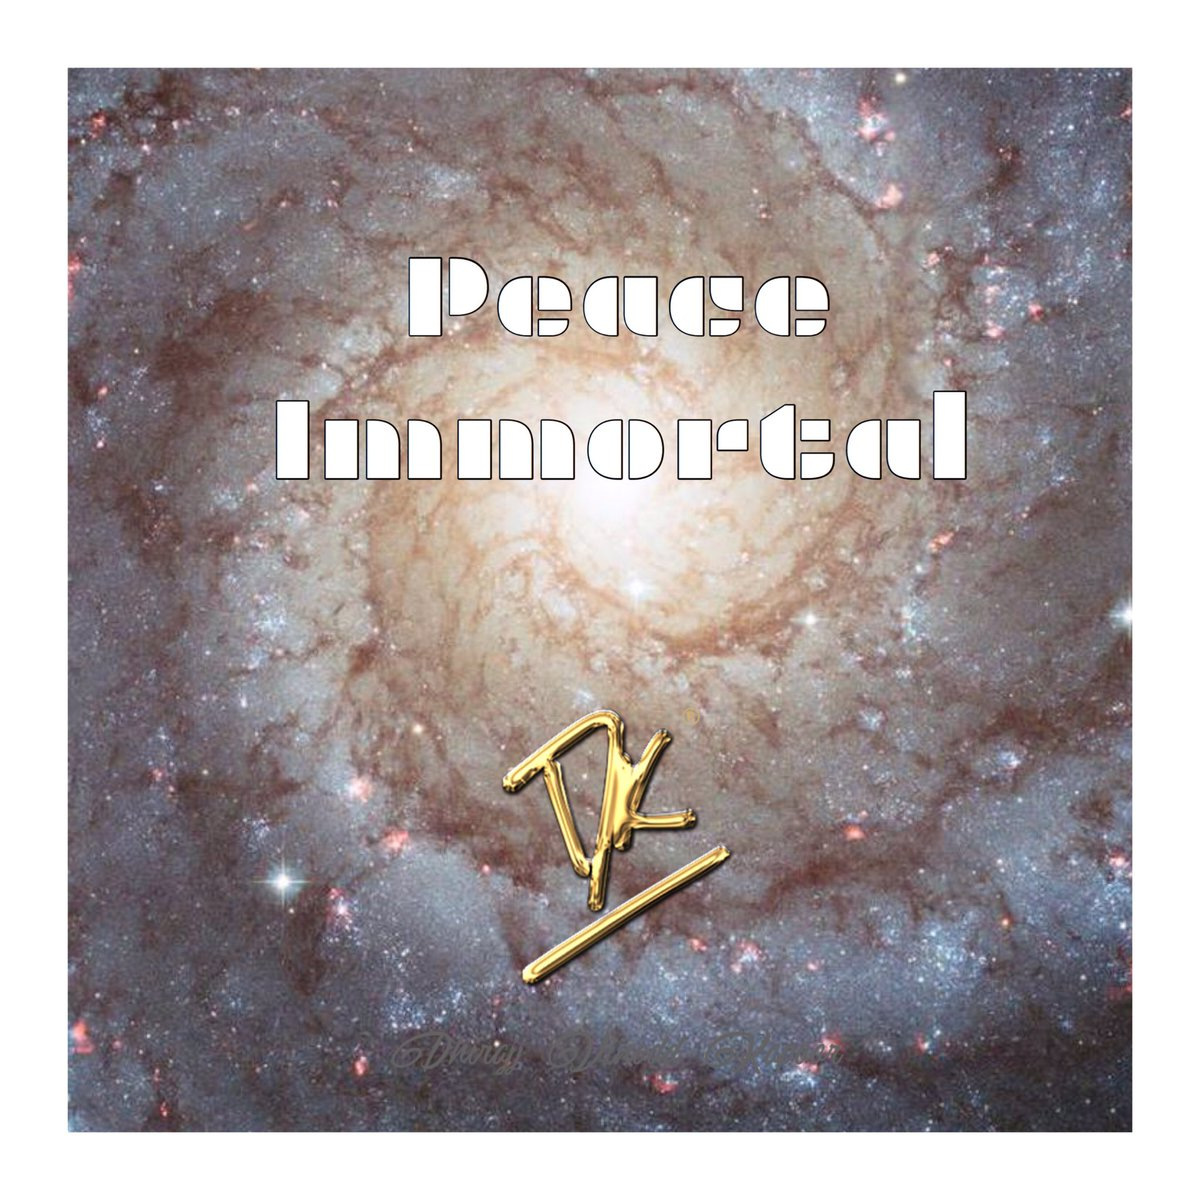 Peace Immortal ! #deepthought #quotes #deepthoughts #love #lovequotes #quote #deep #quotestoliveby #deepquotes #thoughts #peace #immortal #motivationalquotes #wordsofwisdom #thoughtoftheday #quotesaboutlife #inspirational #quoteoftheday  #inspirationalquotes #truequotes <br>http://pic.twitter.com/u8X1x70PFT